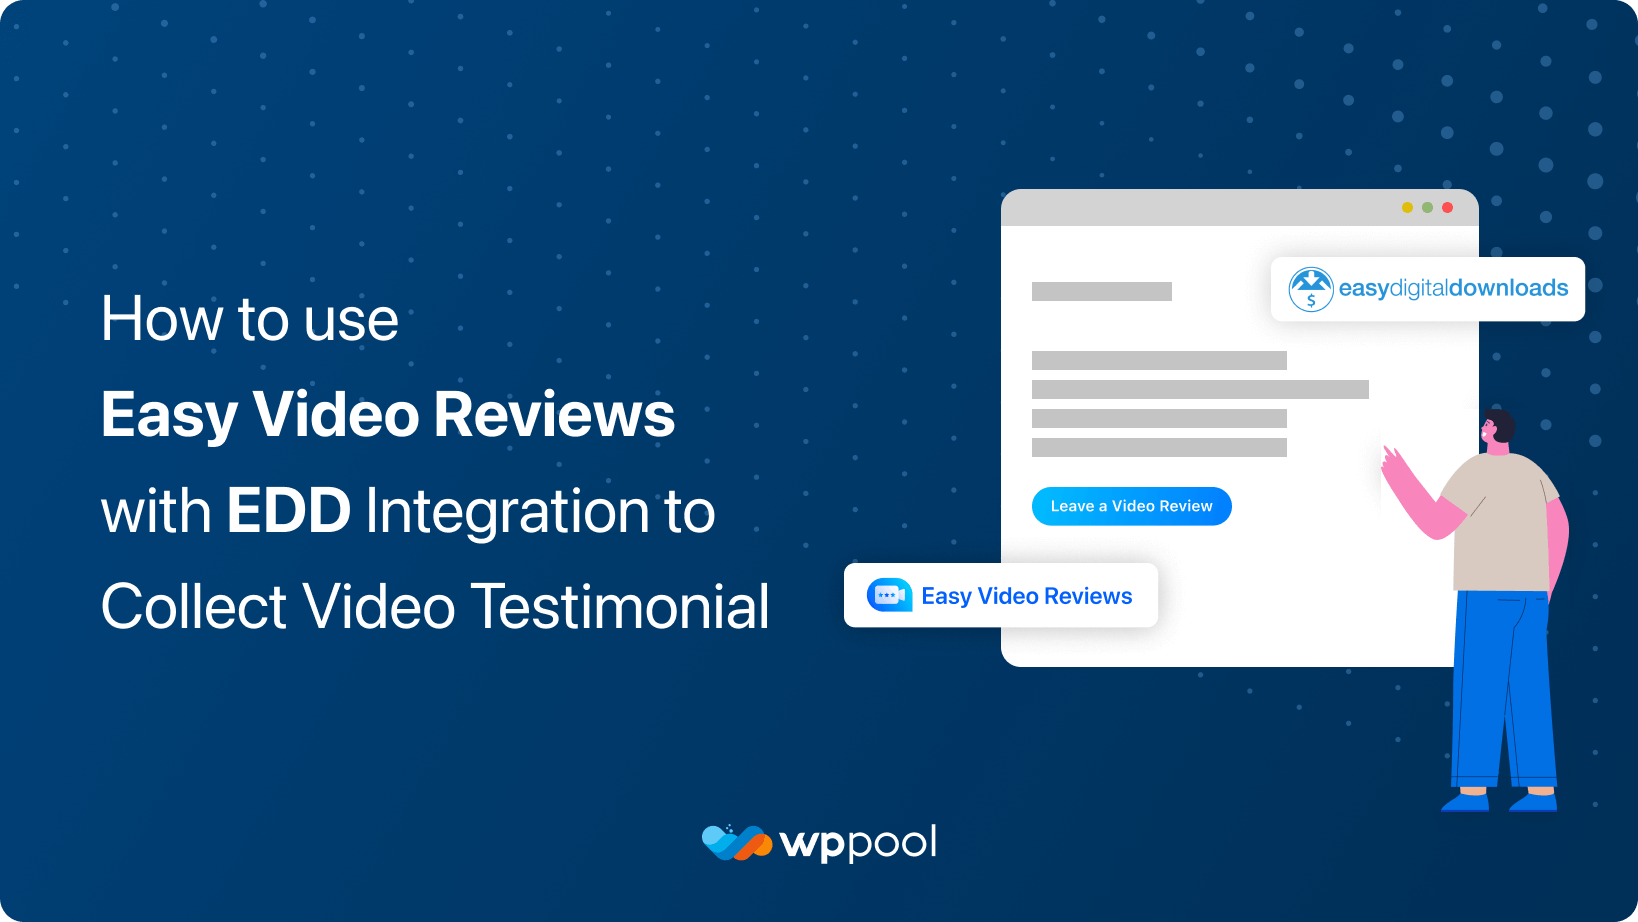 How to Use Easy Video Reviews with EDD Integration to Collect Video Testimonials